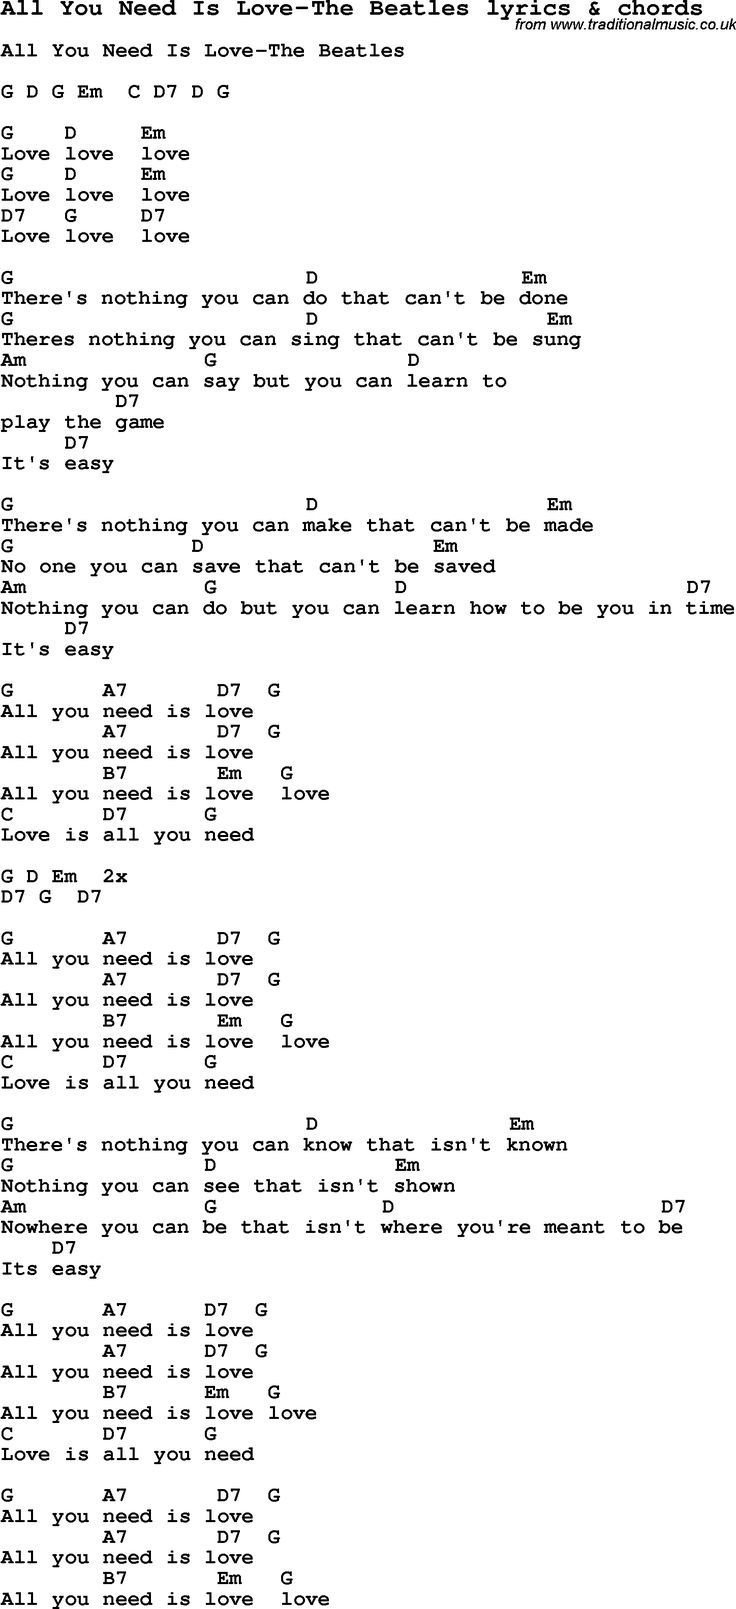 All You Need Is Love Guitar Chords idea gallery